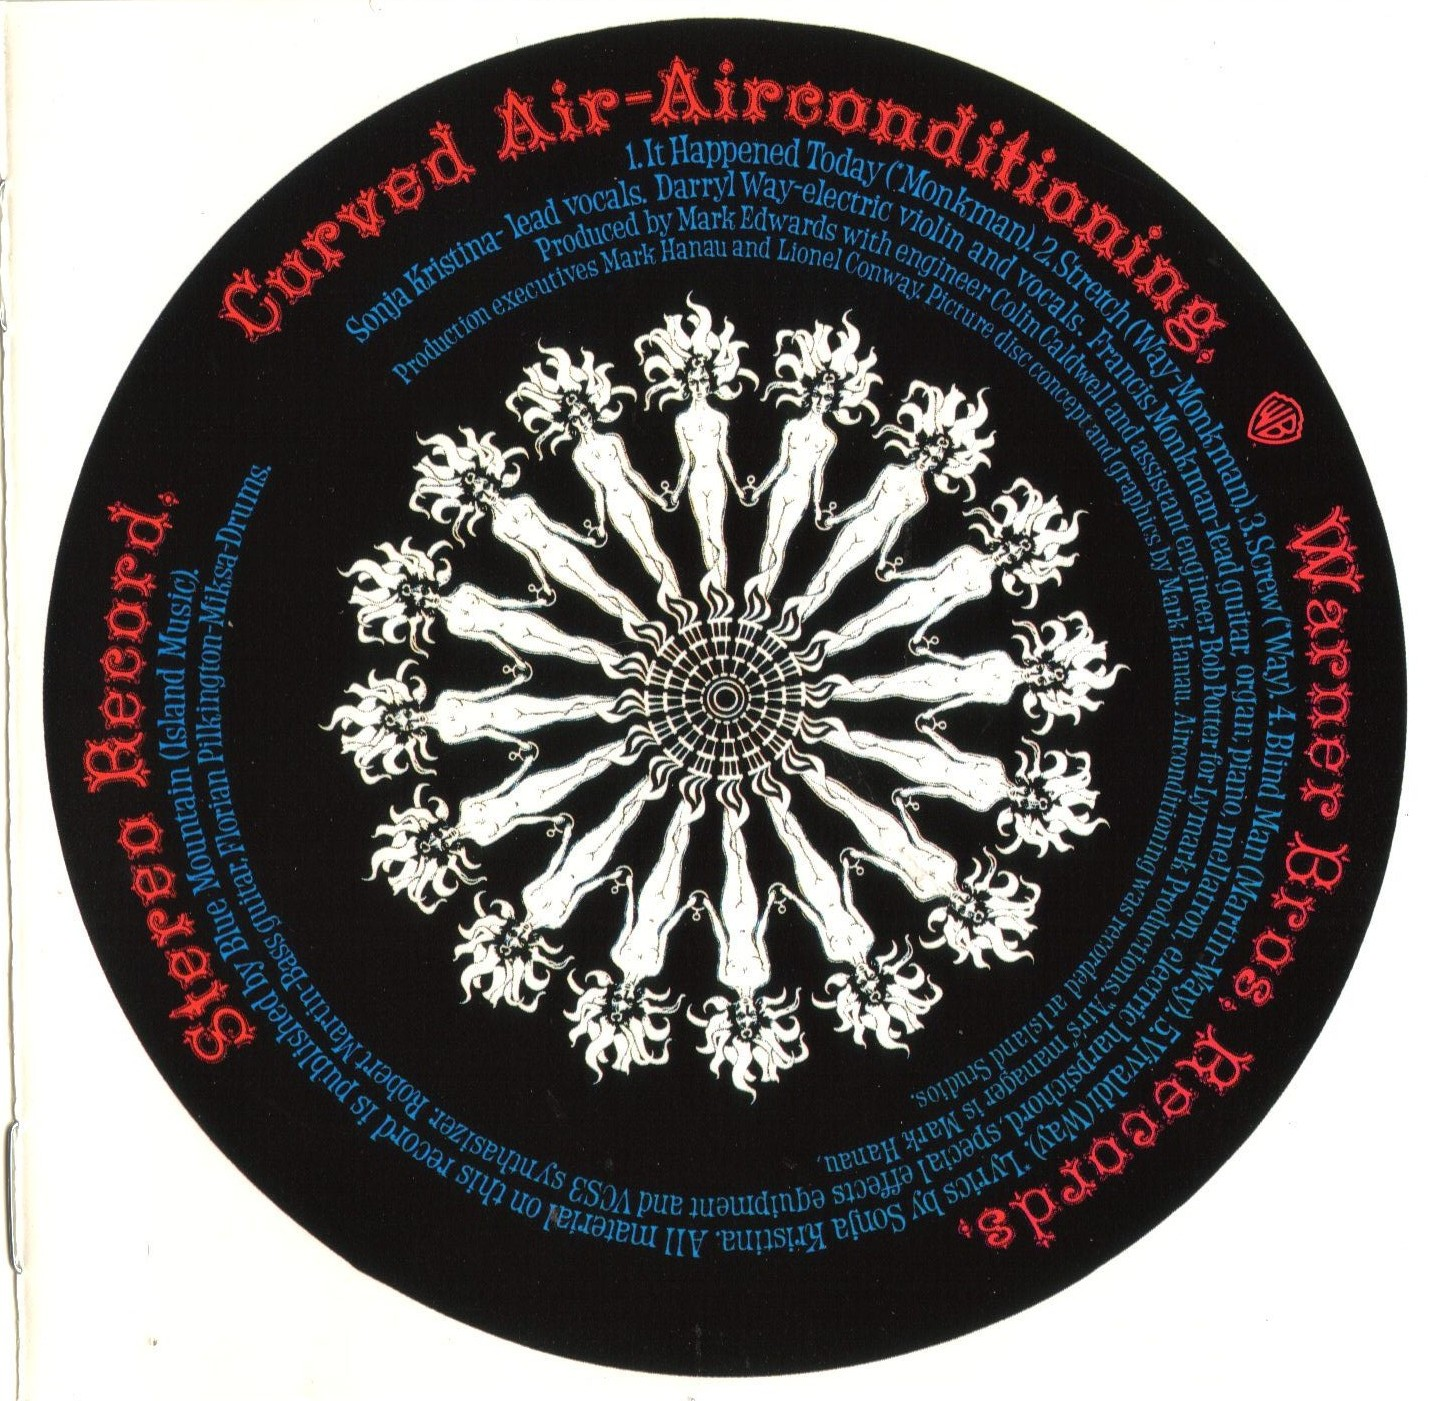 Las Galletas De Maria Curved Air Airconditioning 1970 Uk